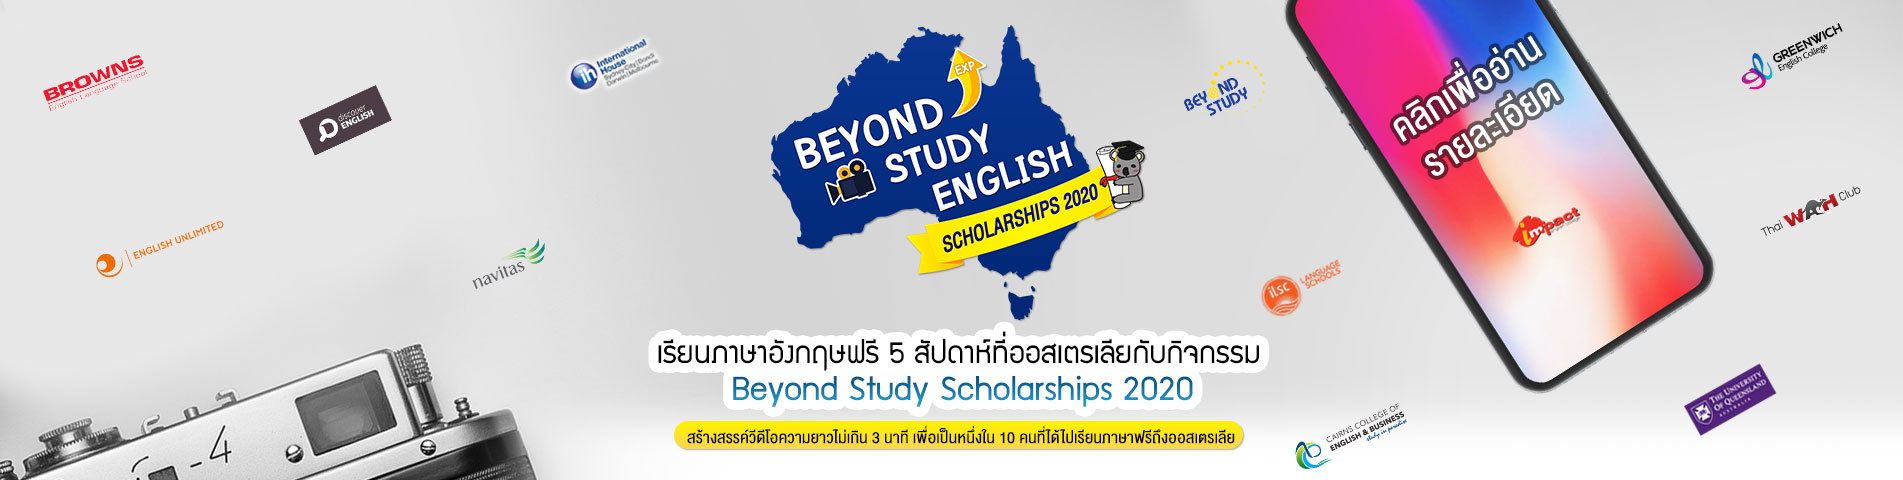 Beyond-Study-Scholarships-2020